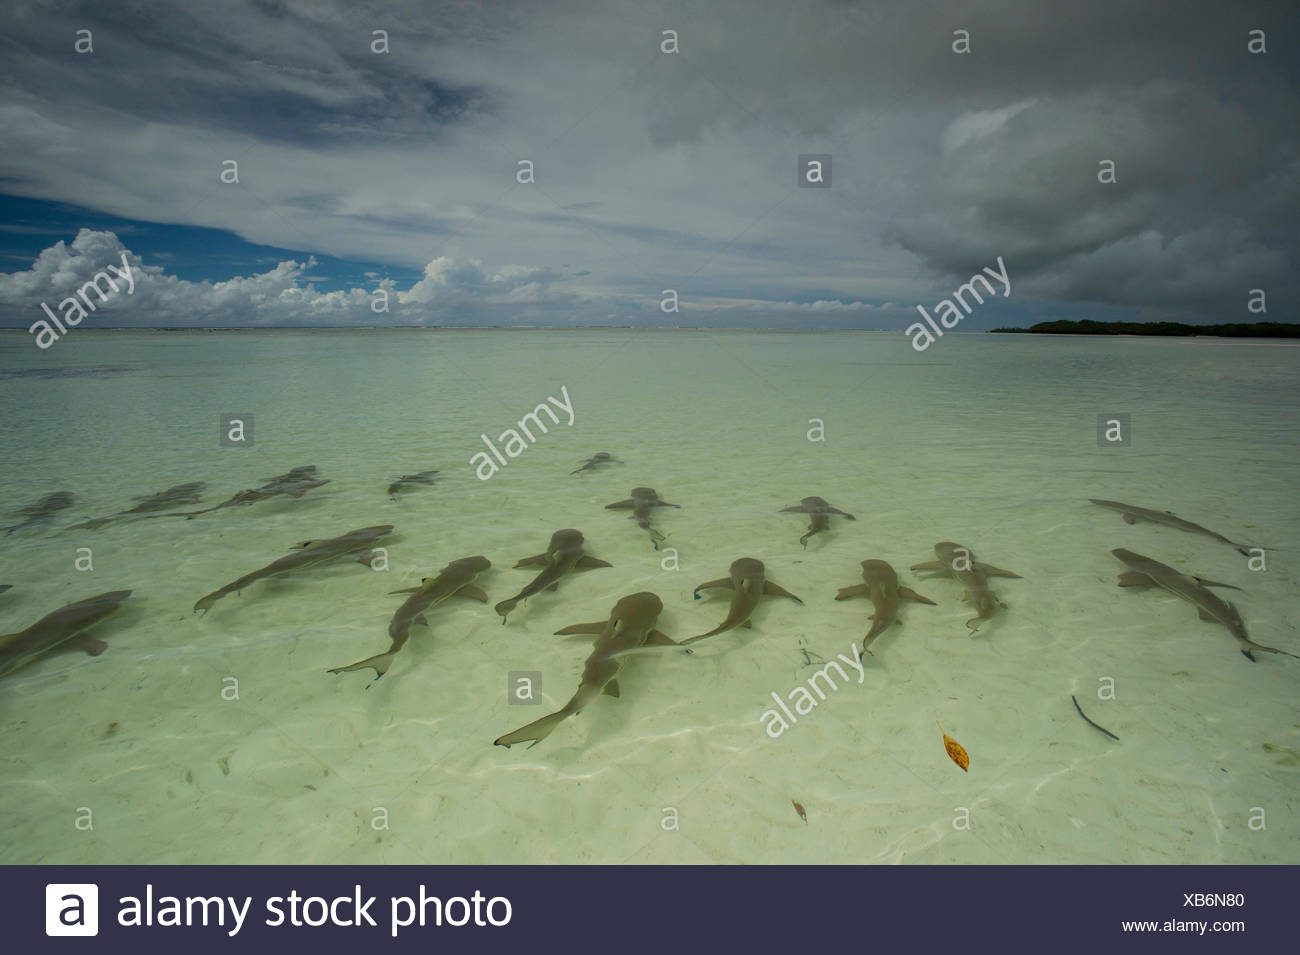 Blacktip sharks swim in shallow waters off Picard Island